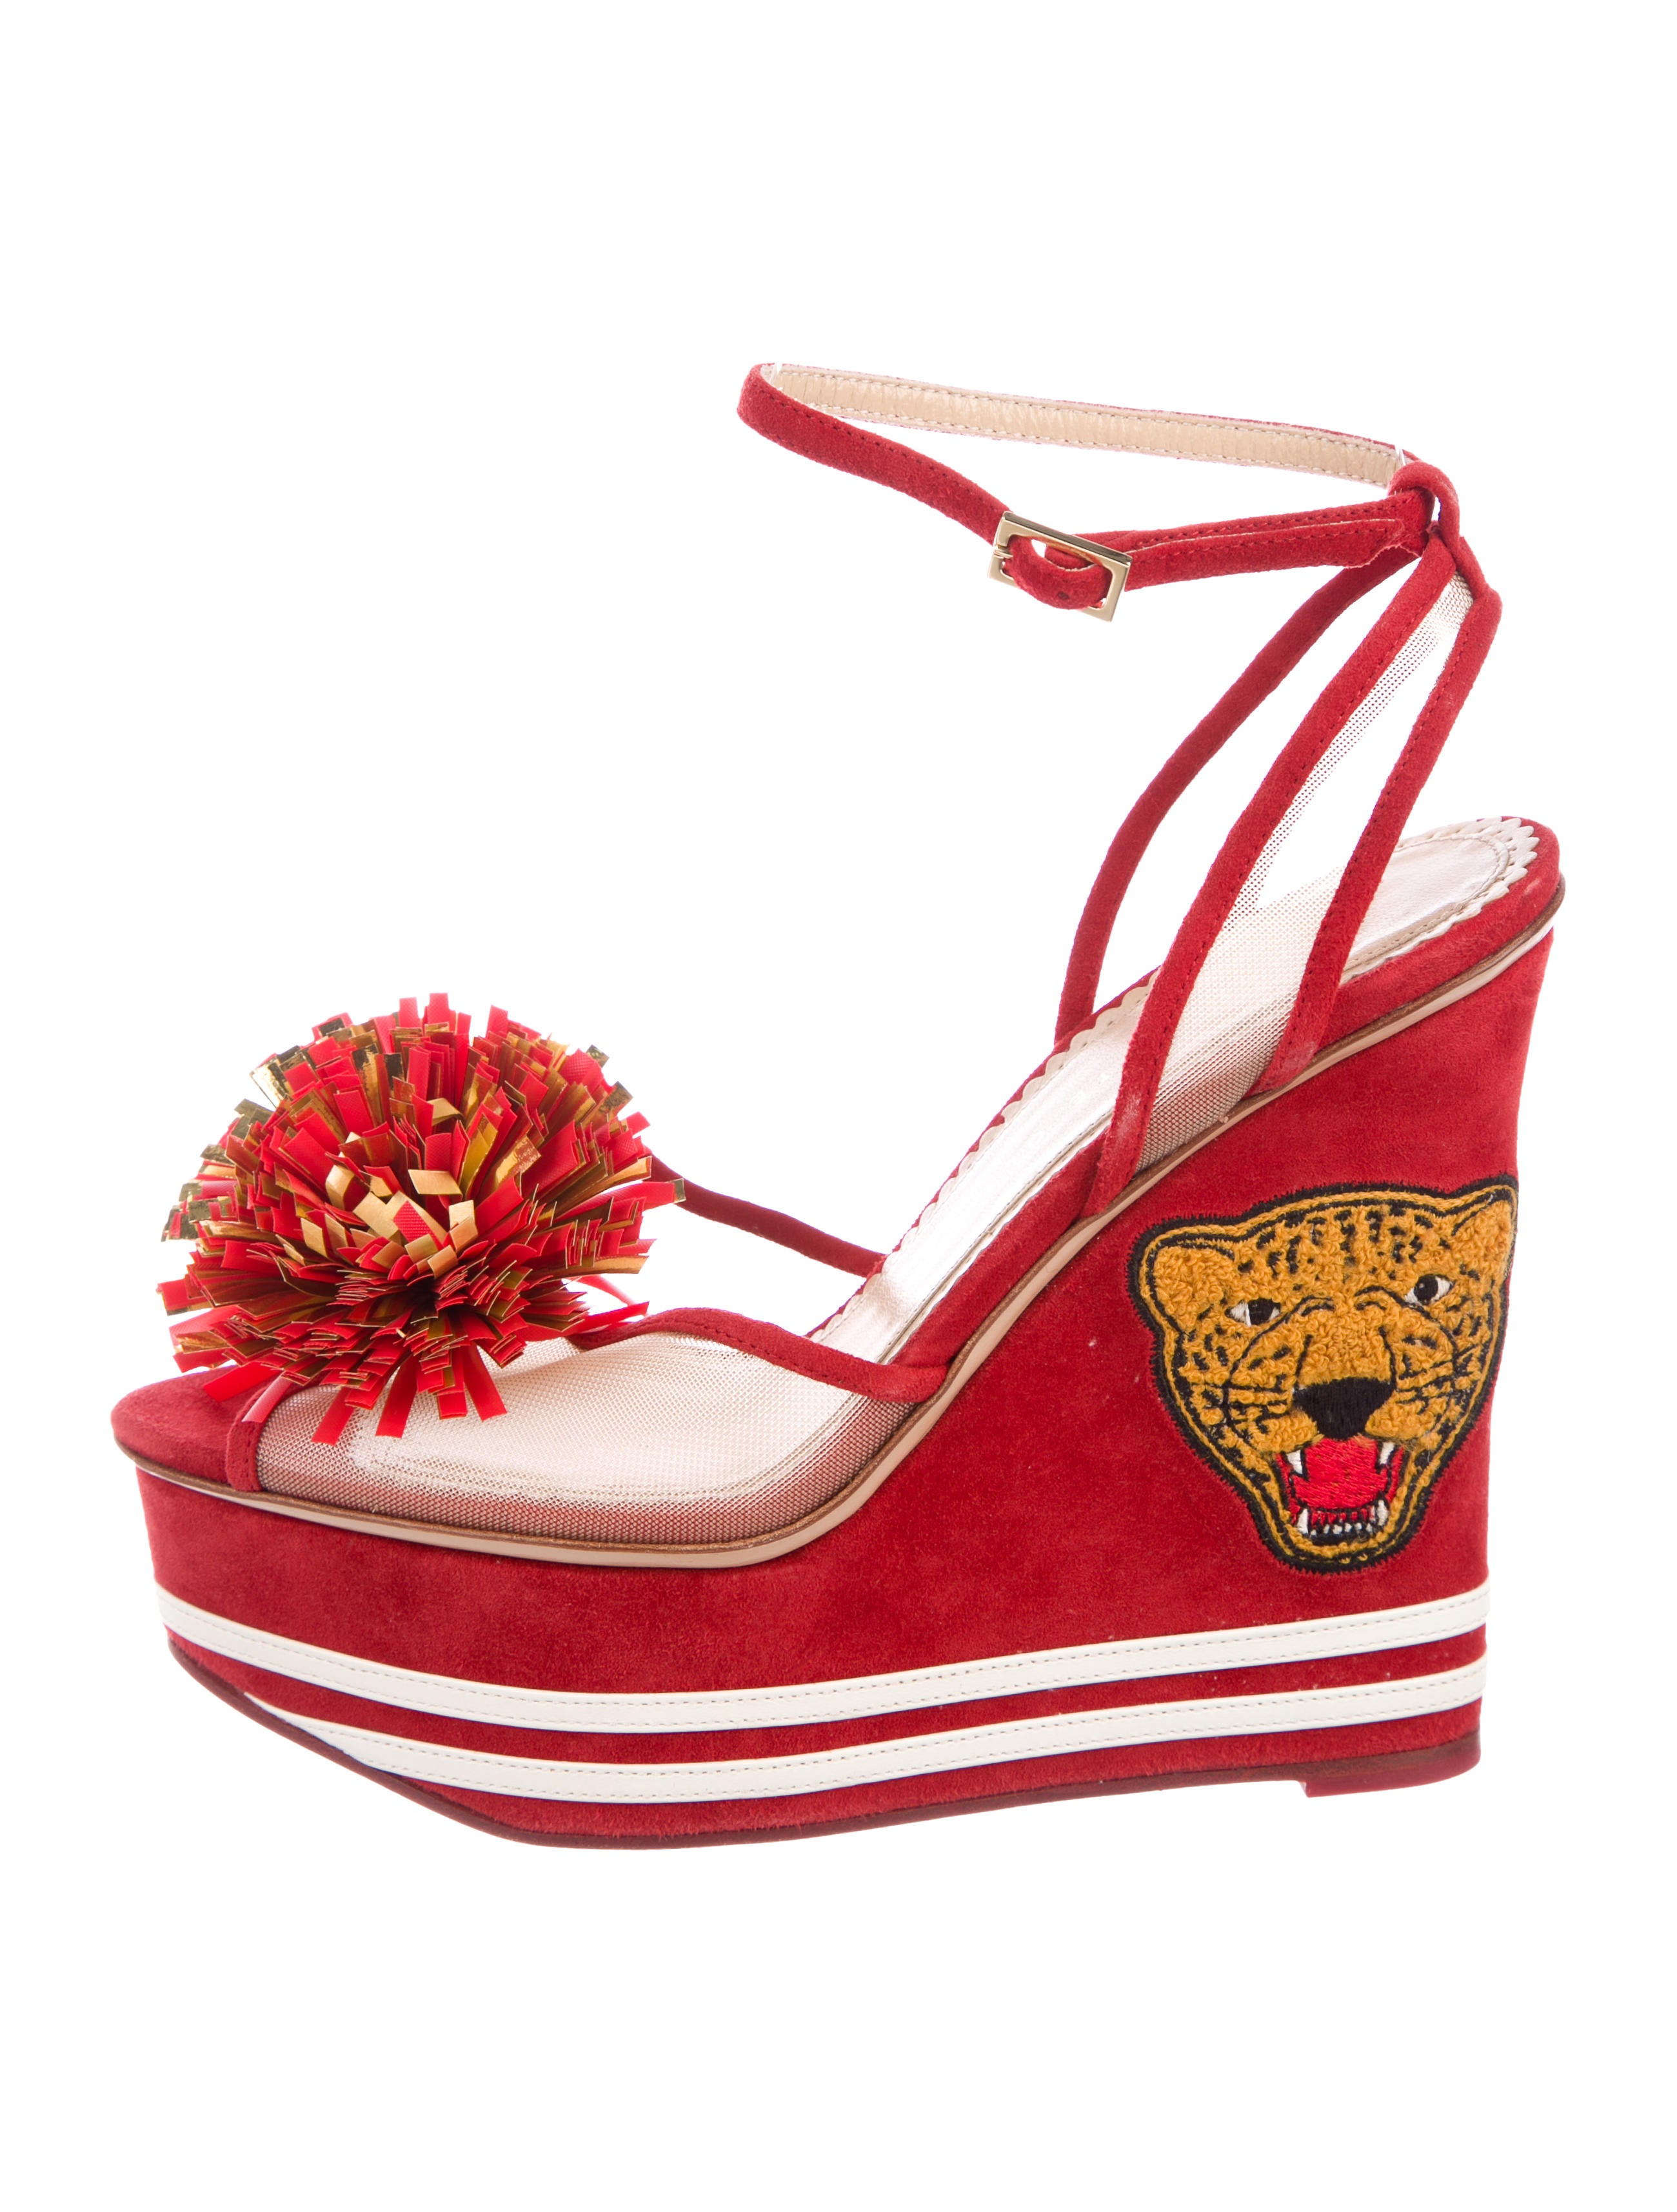 Charlotte Olympia Team Spirit Platform Wedges discount websites cheap sale pictures best place outlet brand new unisex the cheapest cheap price MHVHNN8